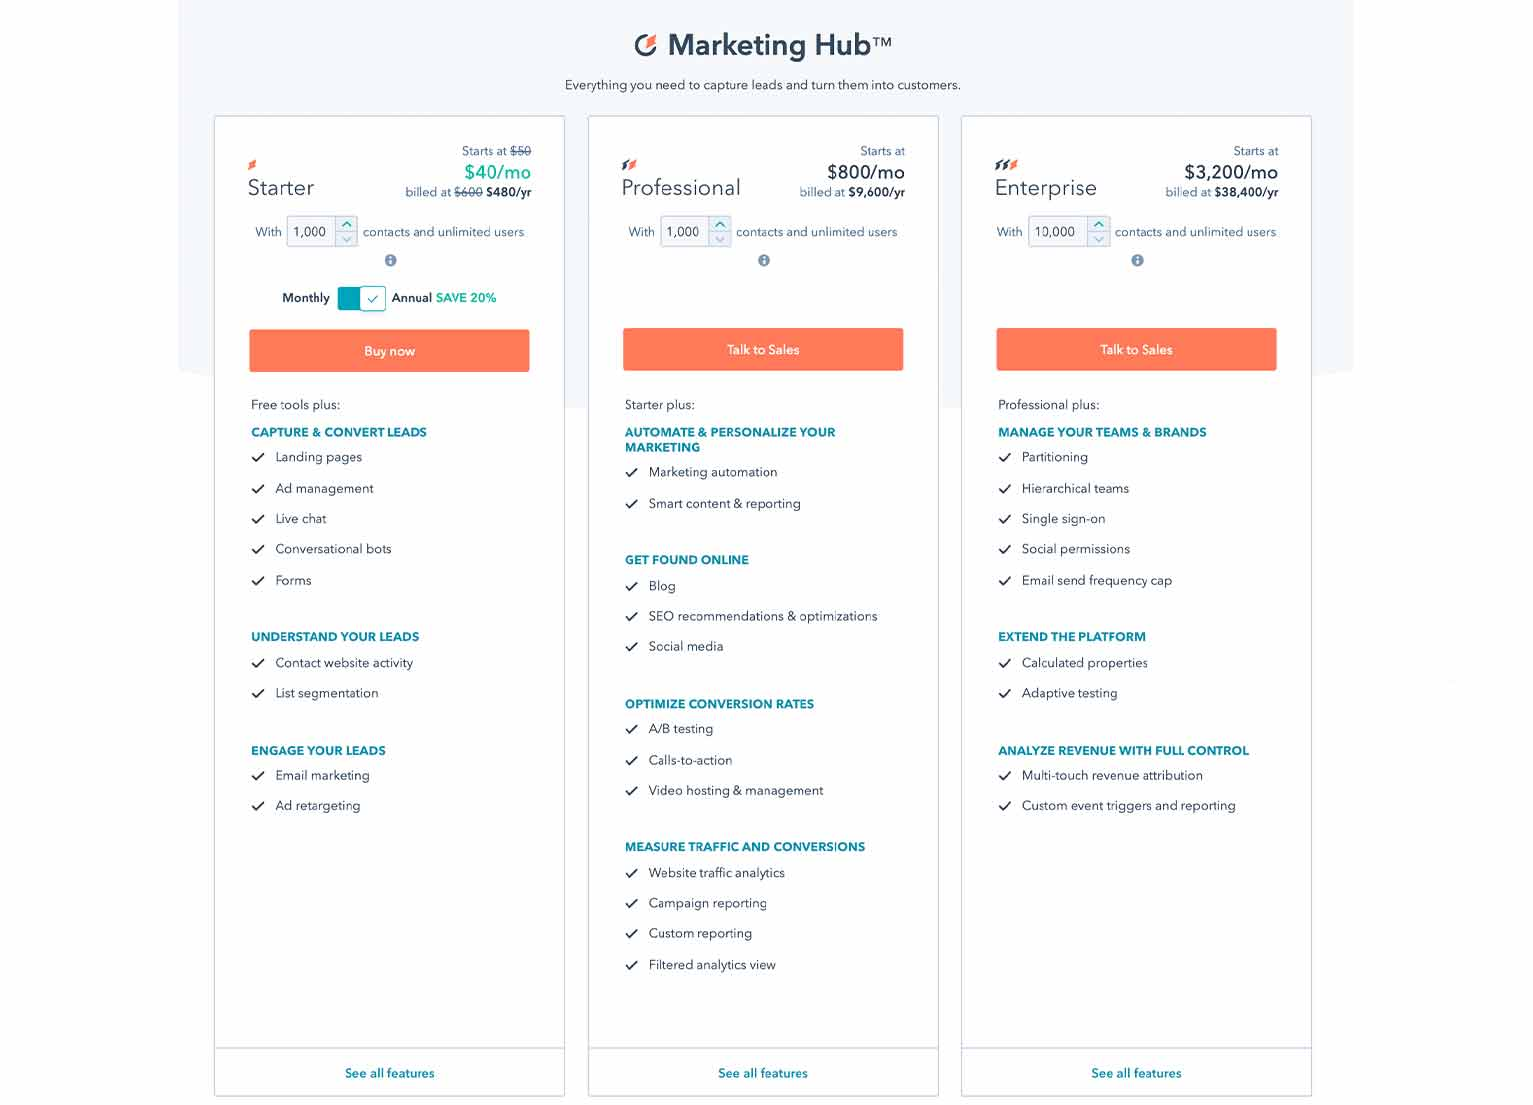 A 3-column breakdown of plans available from HubSpot Marketing Hub, including its Starter, Professional and Enterprise plans, each with pricing and features.